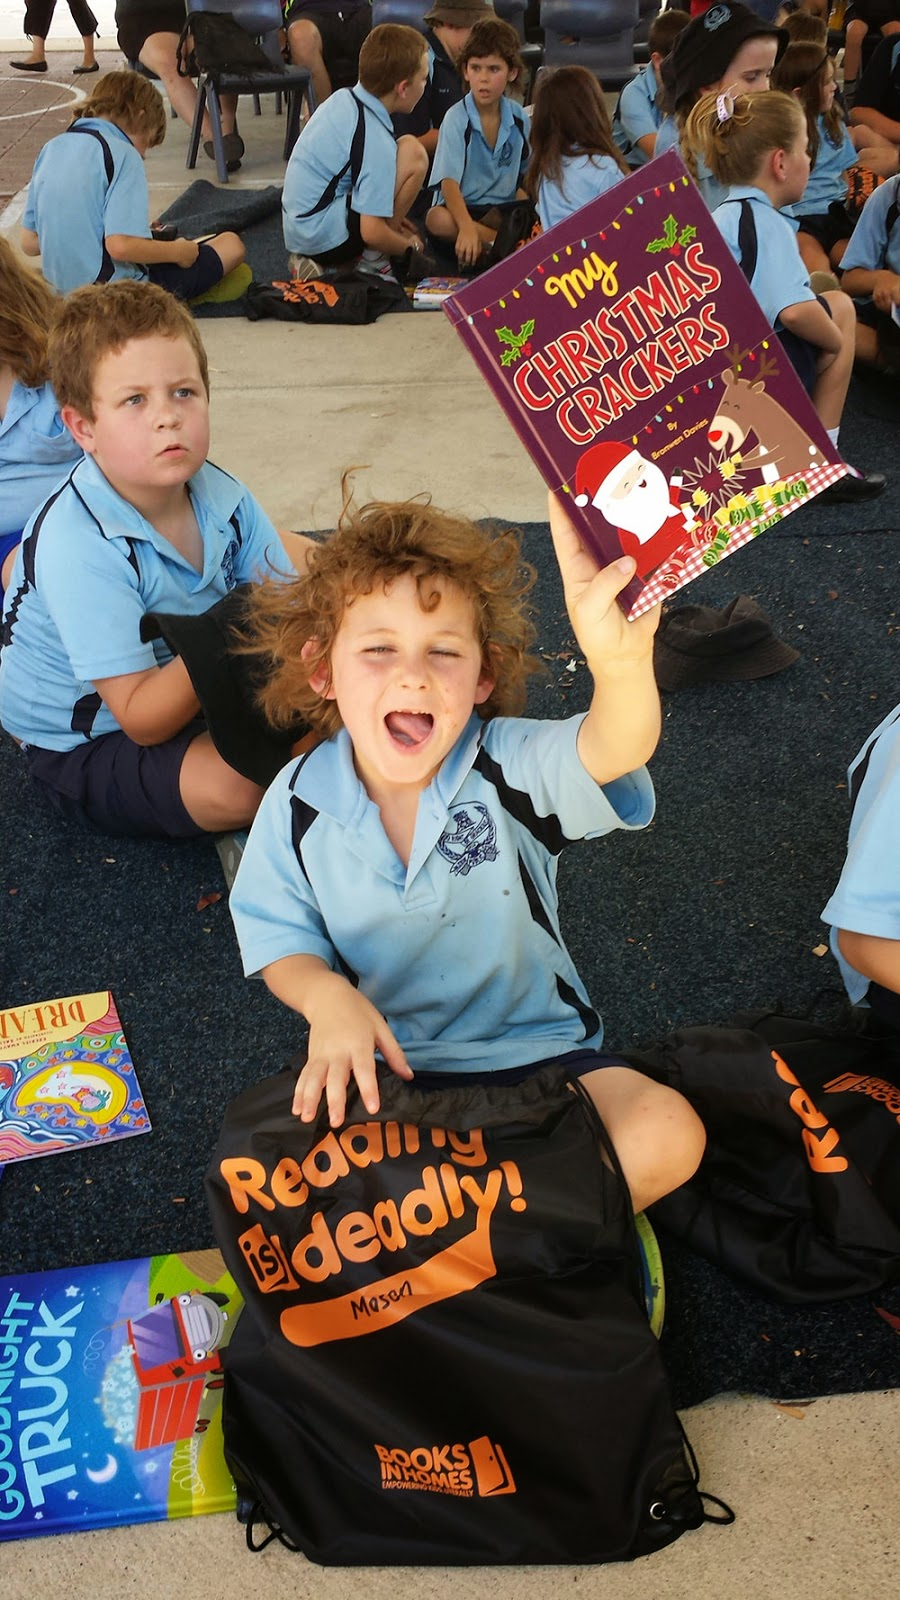 reading books at school is important